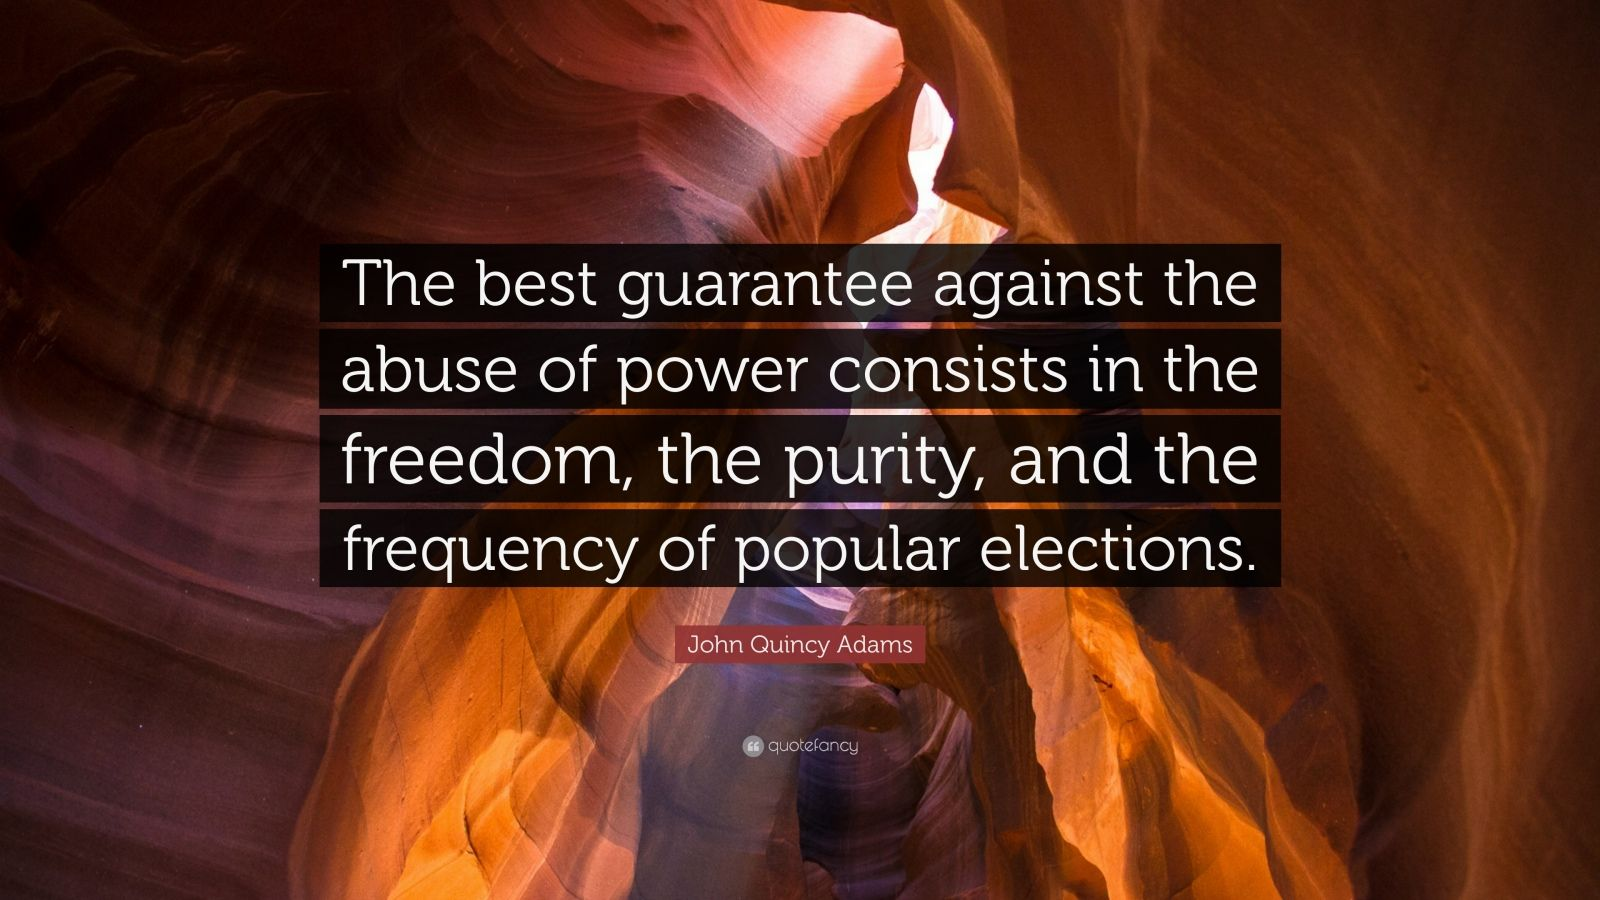 """John Quincy Adams Quote: """"The best guarantee against the abuse of power consists in the freedom, the purity, and the frequency of popular elections."""""""